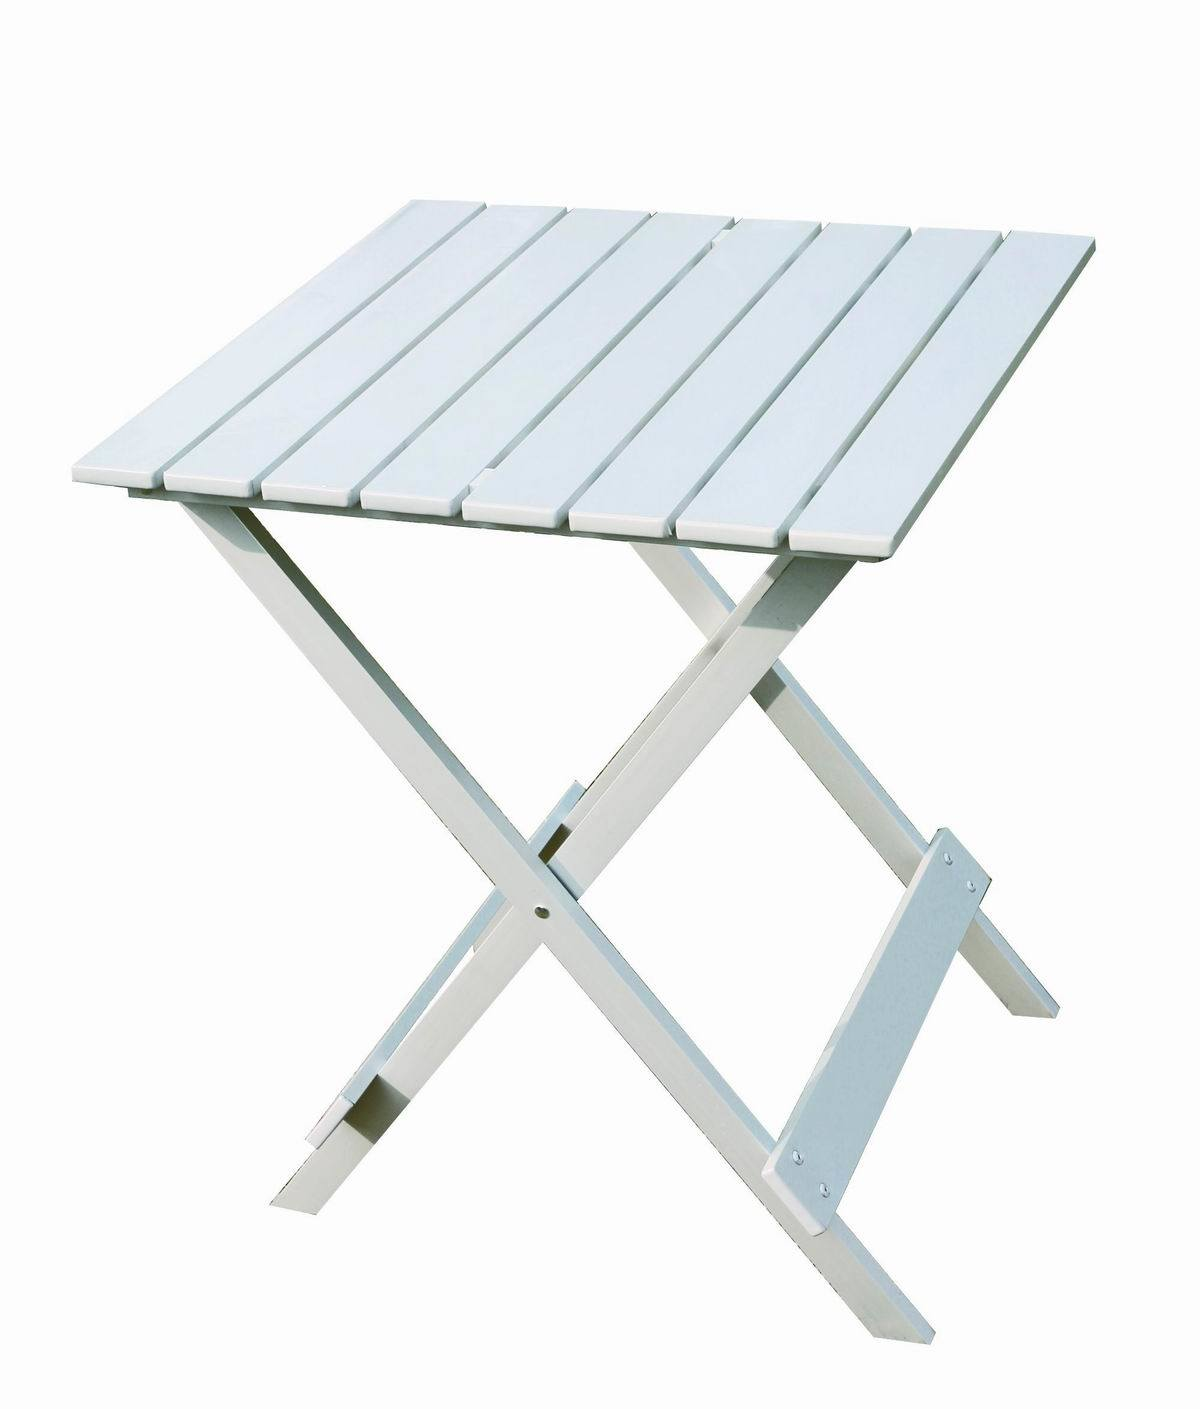 China Aluminum Folding Table (TA1075)  China Aluminum Folding Table, Alumin -> Aluminium Table